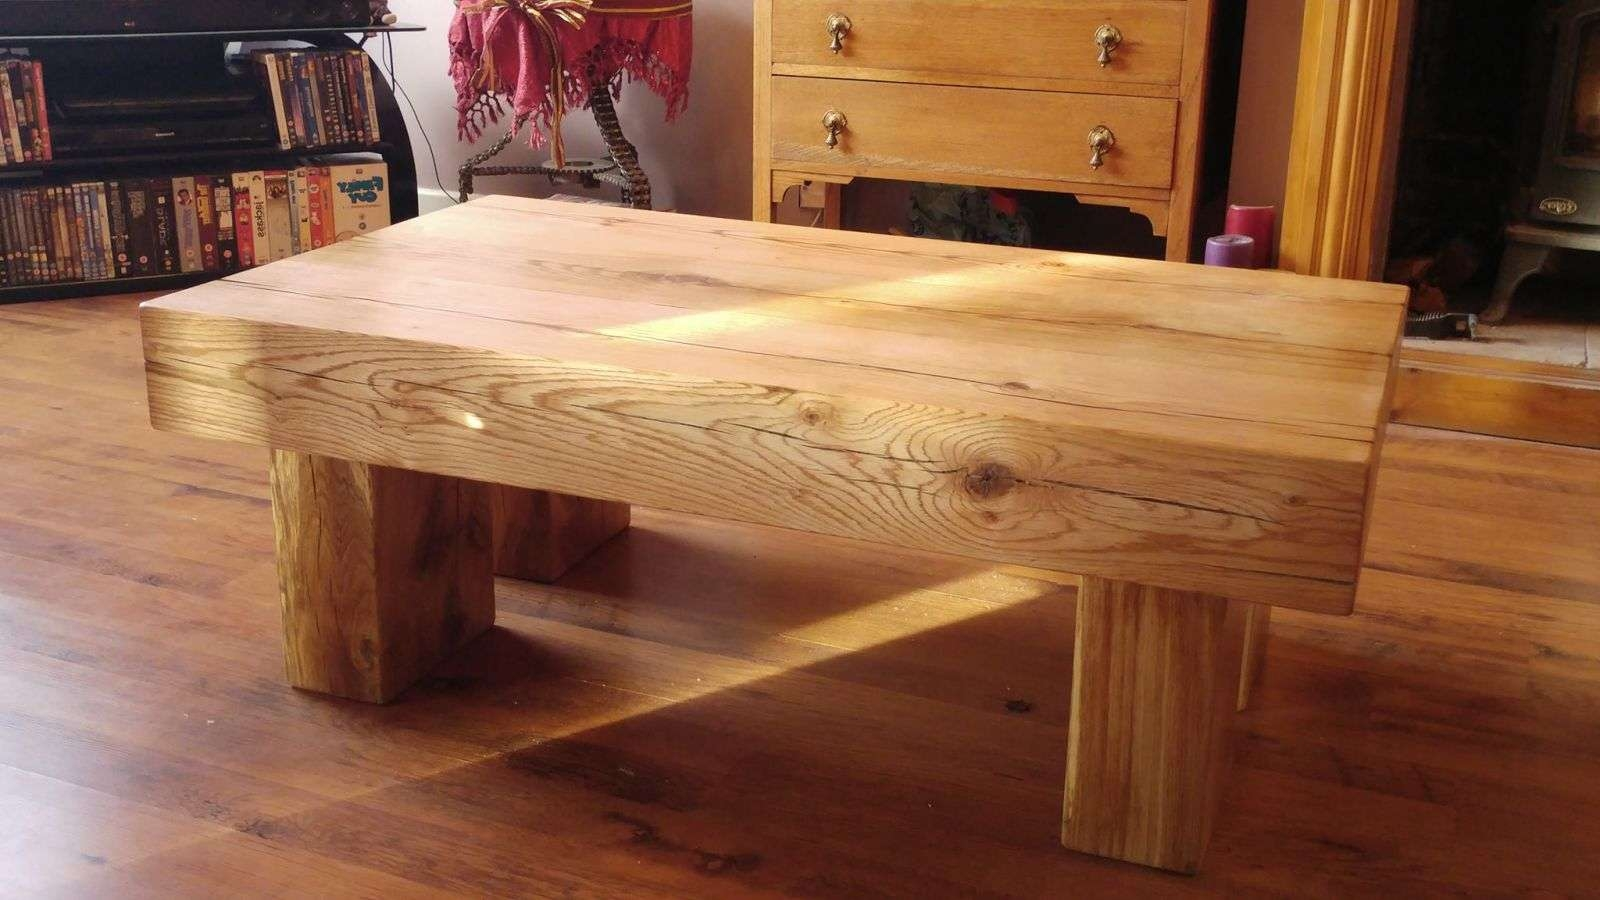 Fashionable Oak Sleeper Coffee Tables Throughout Railway Sleepers – Passionate About Railway Sleepers (View 7 of 20)